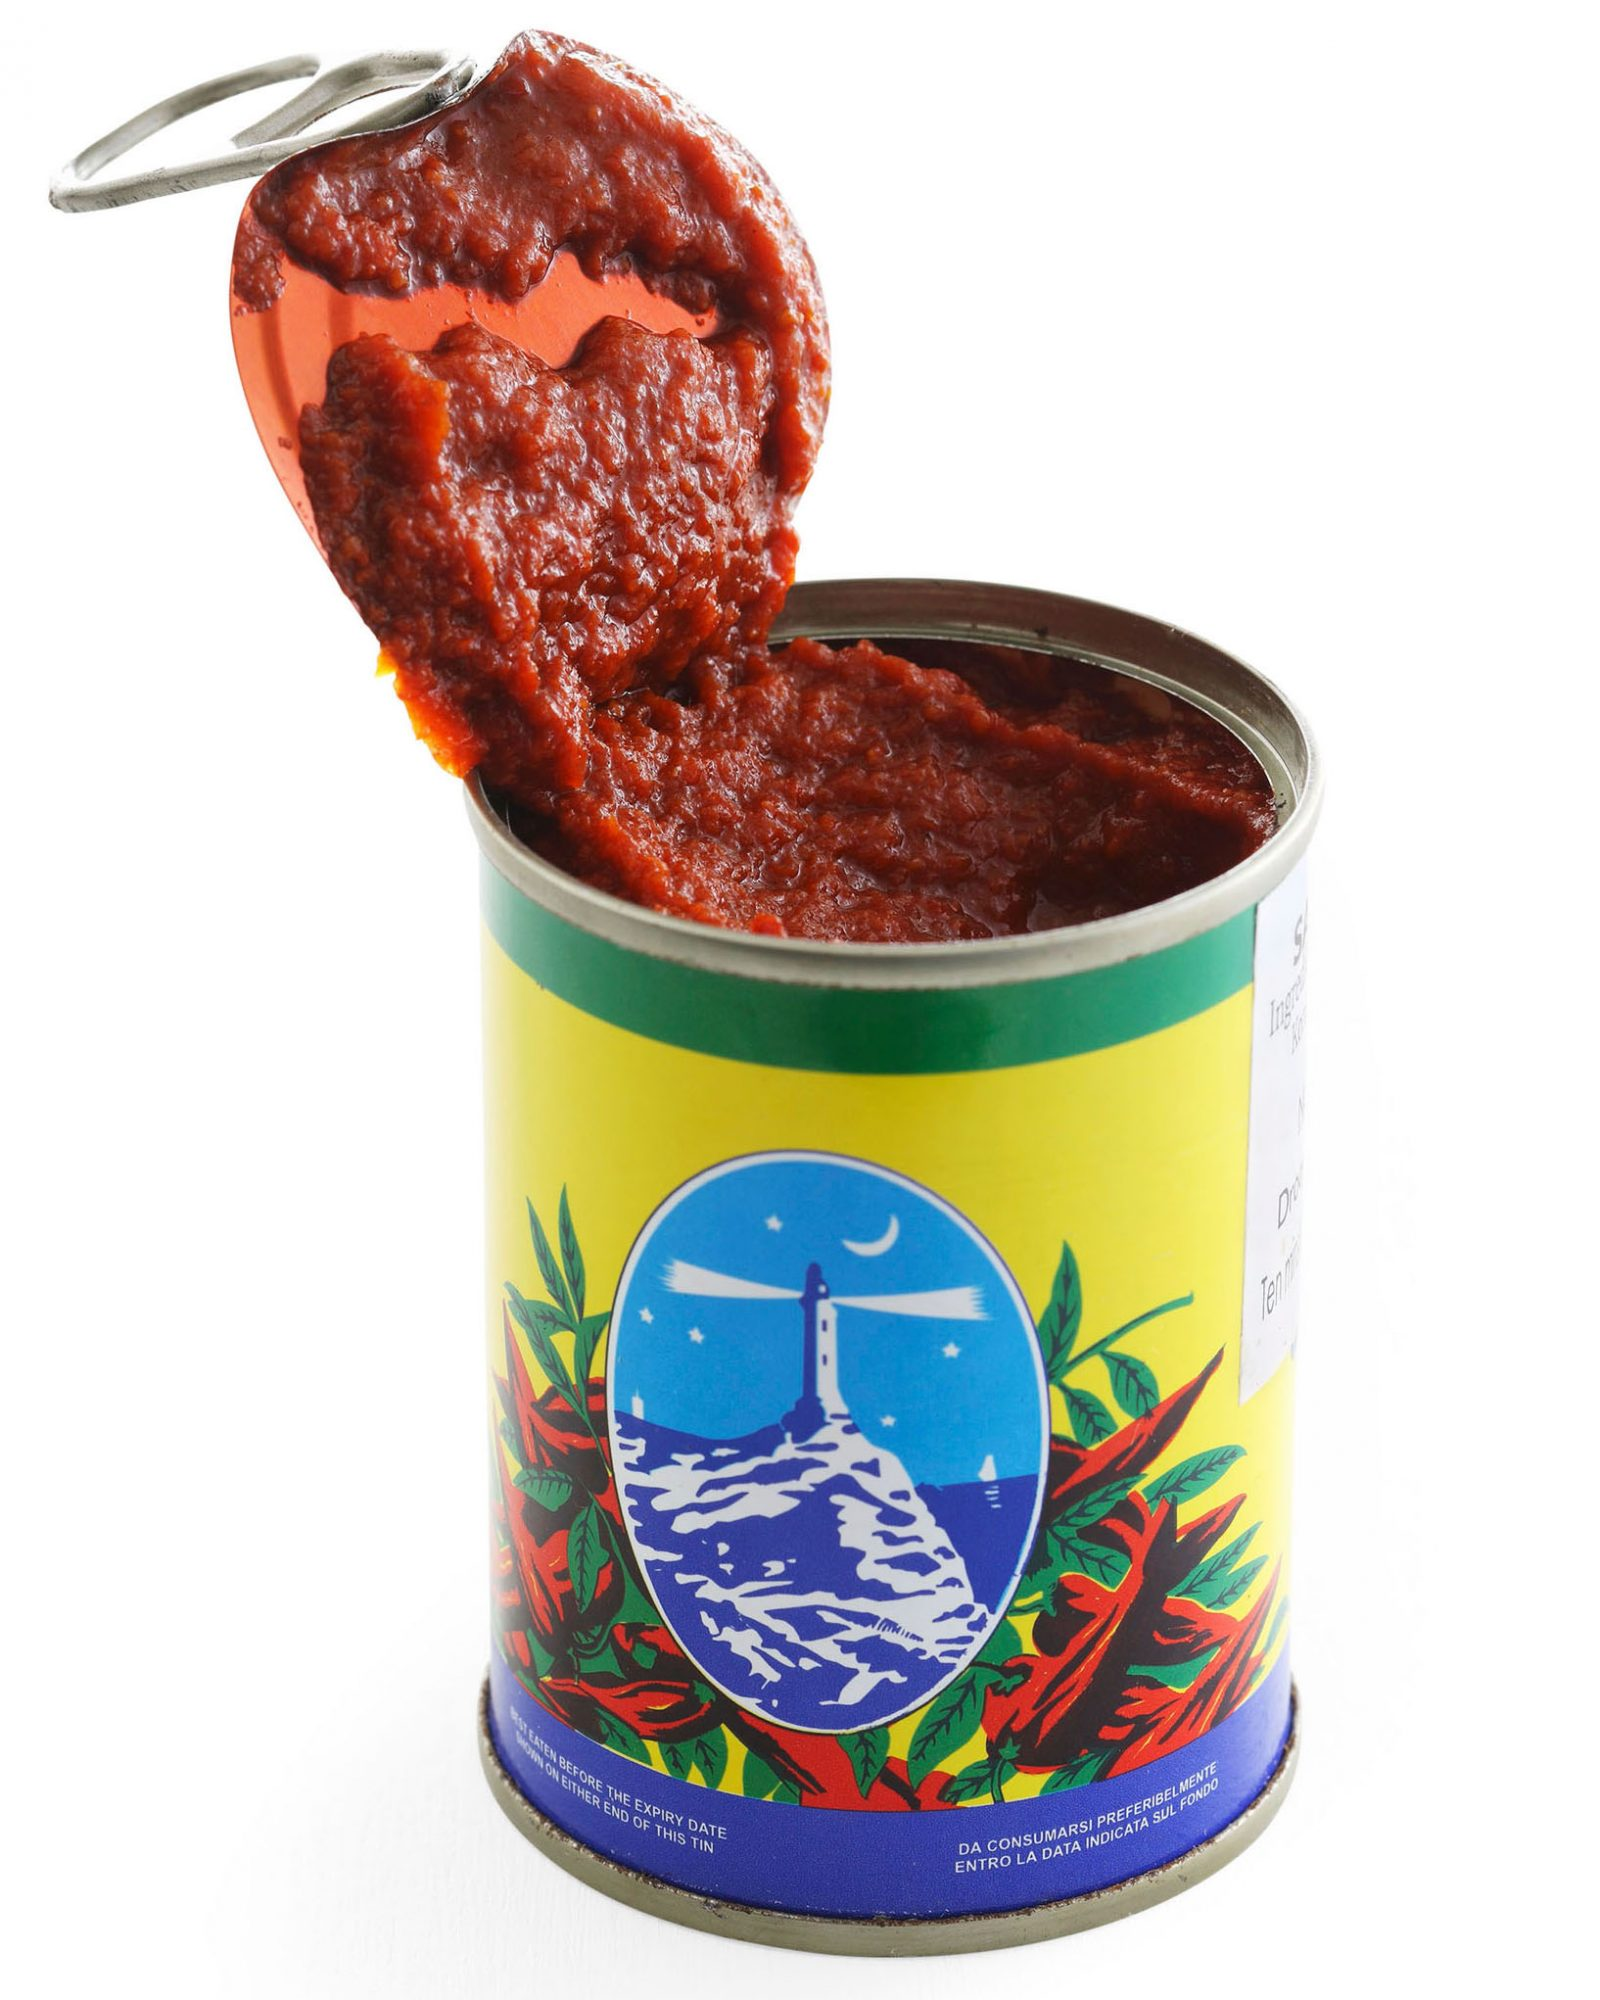 canned harissa hot sauce